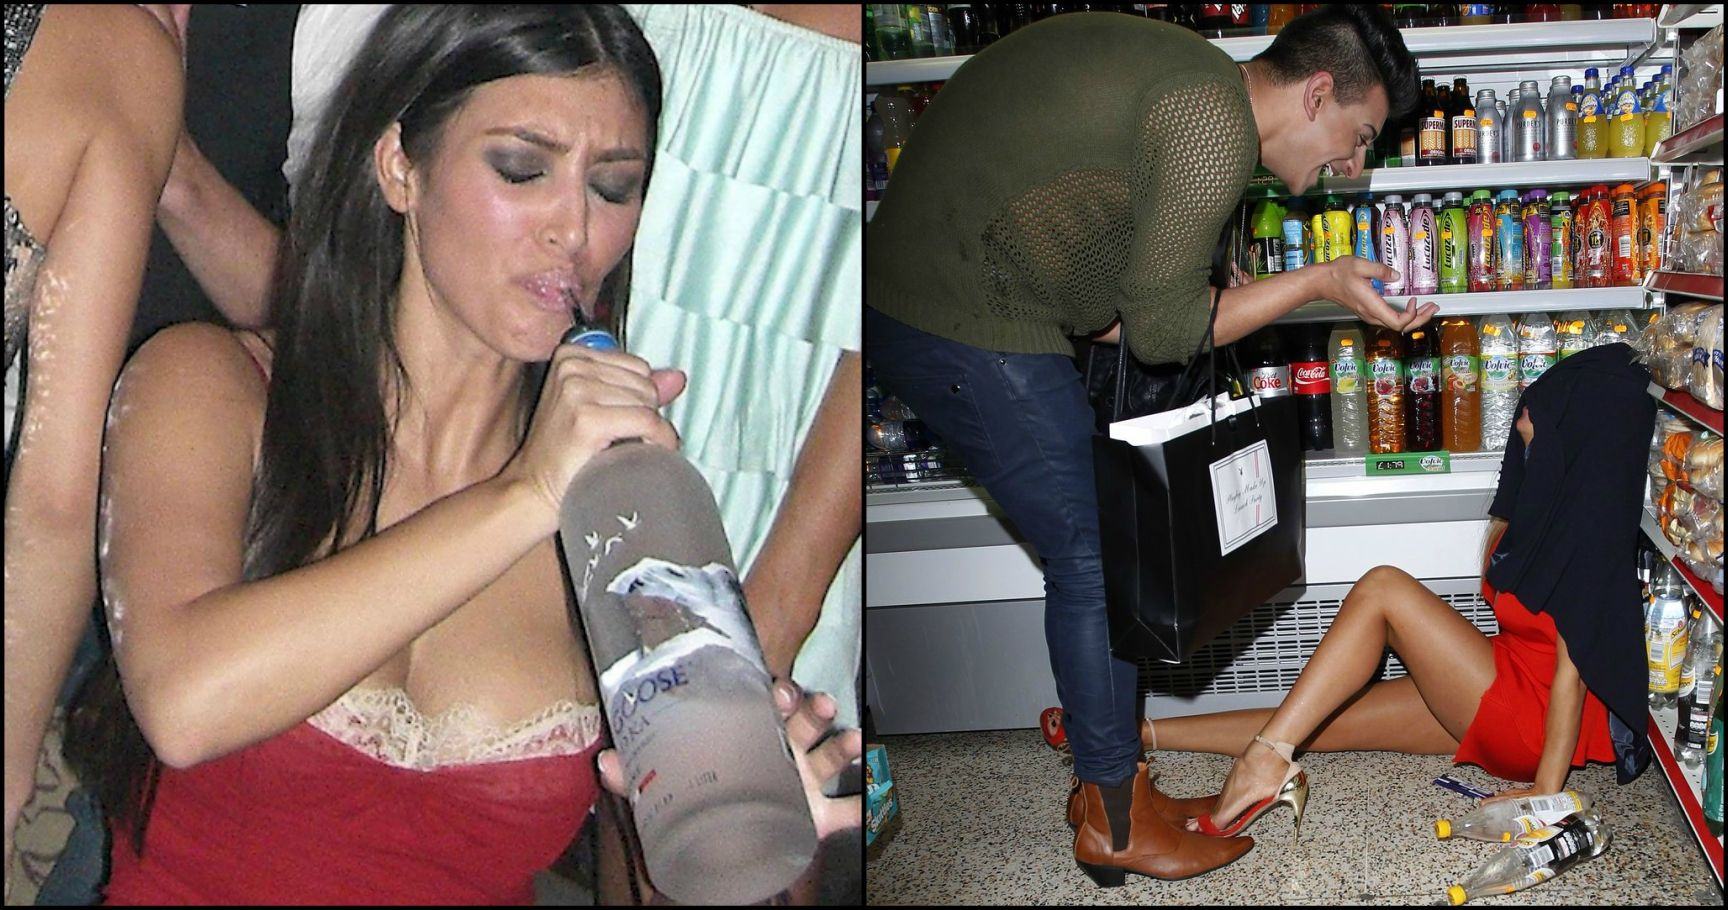 20 Partying Photos These Celebrities Never Wanted You To See